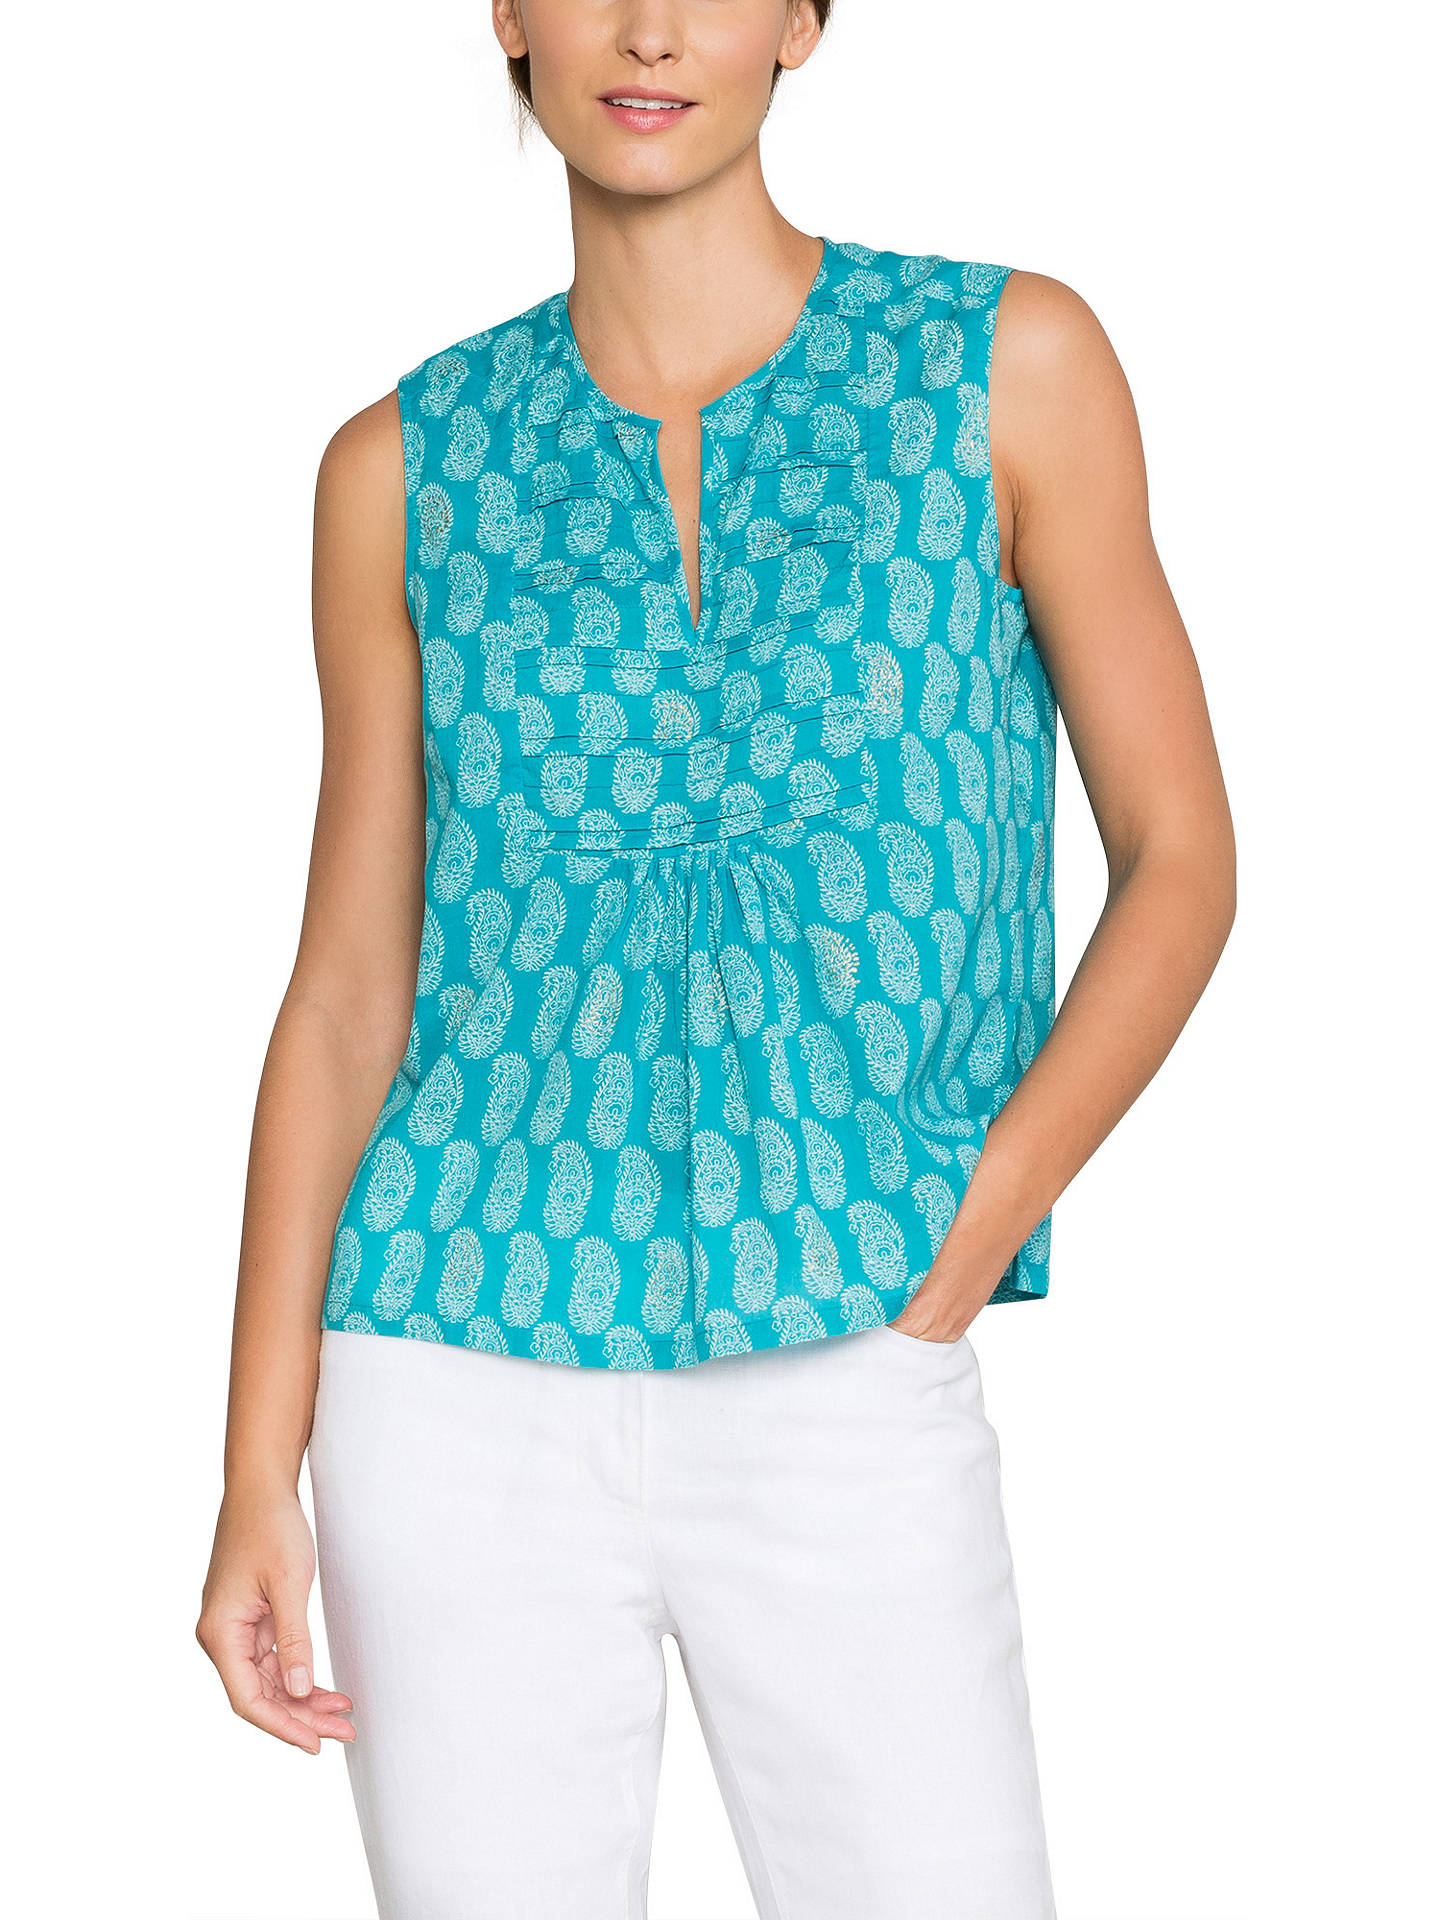 6a892d57b40108 Buy East Anokhi Bamzai Sleeveless Top, Turquoise, 10 Online at  johnlewis.com ...